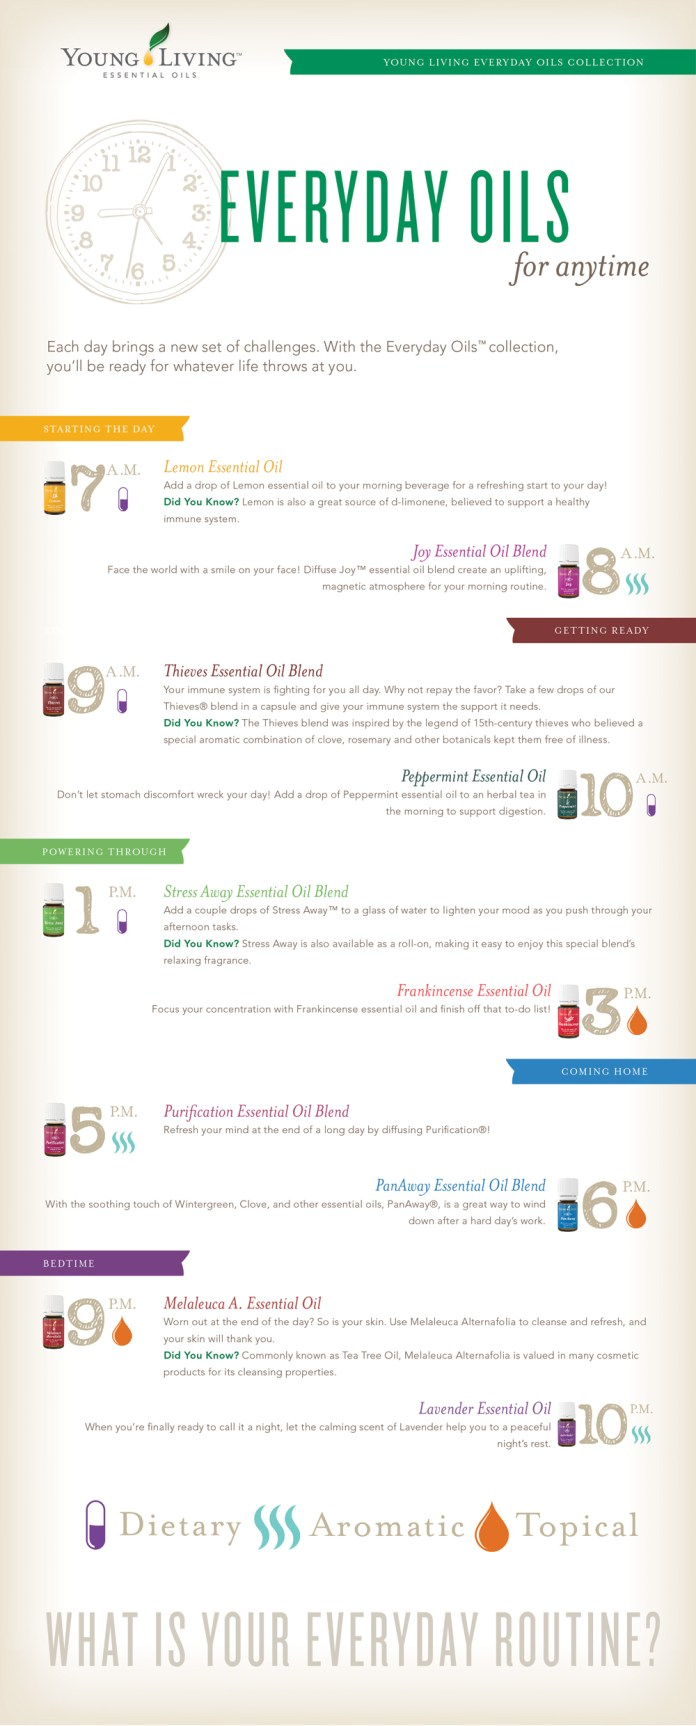 Essential oils - everyday uses